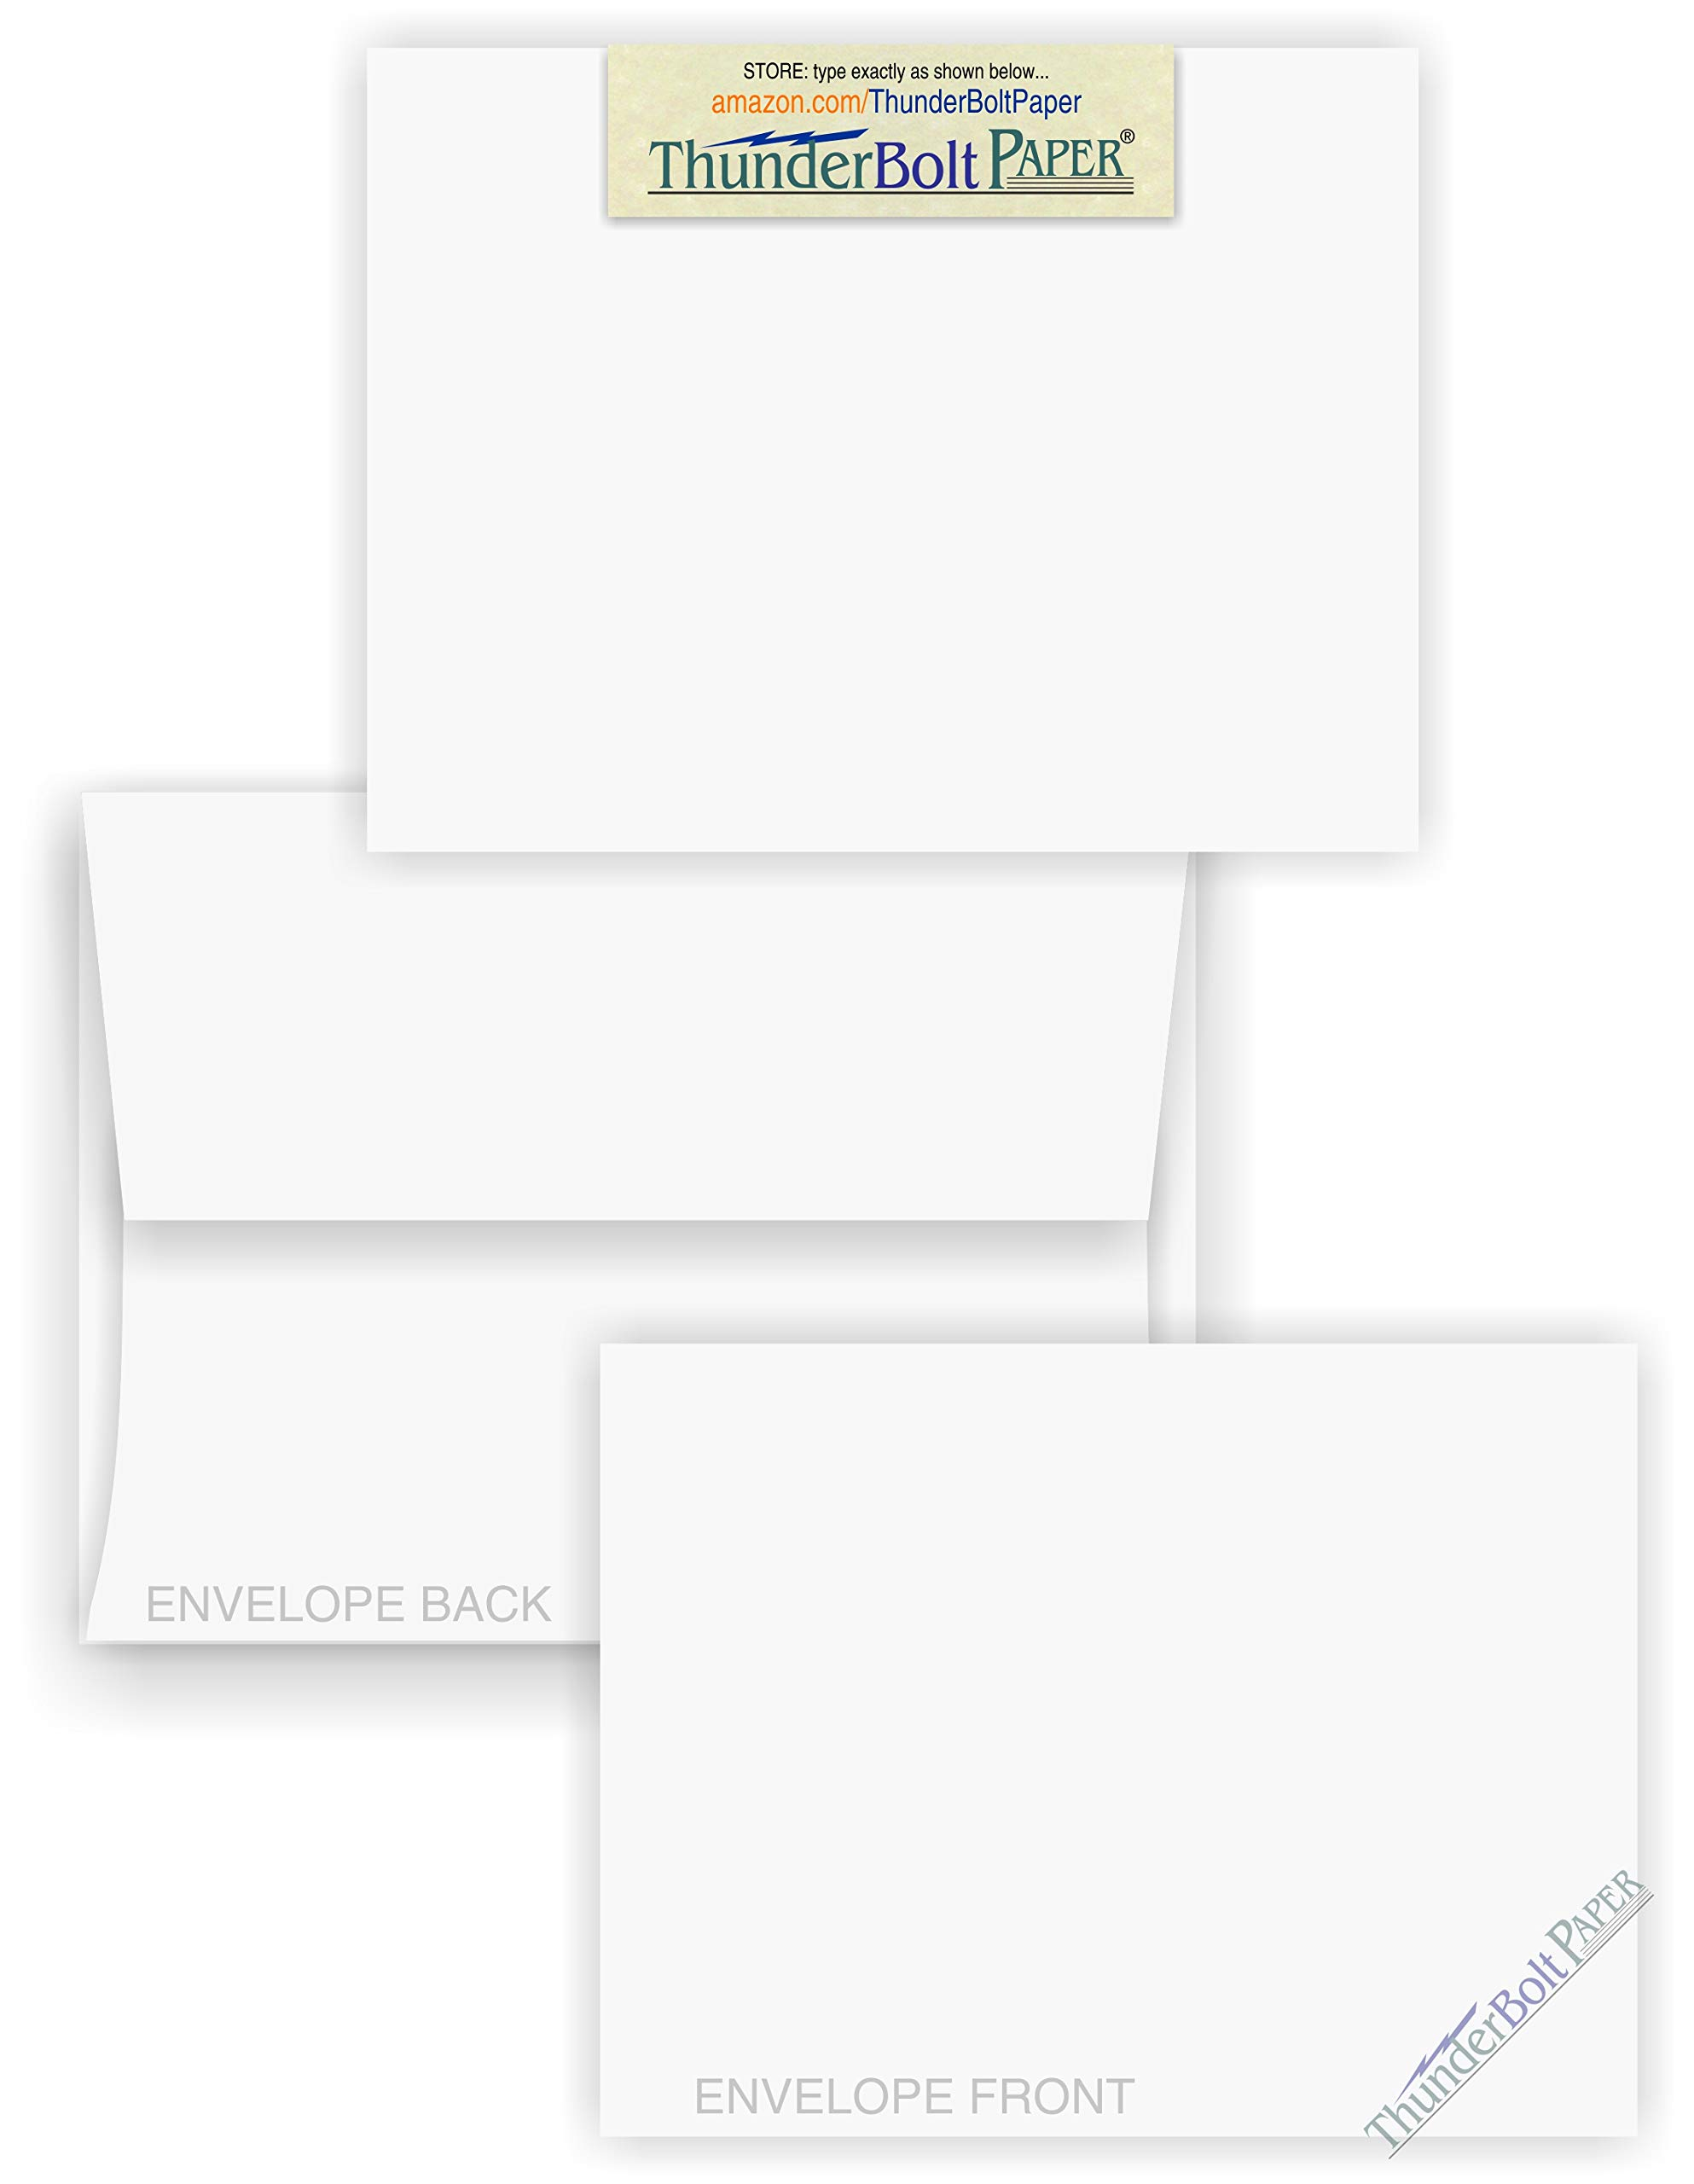 5X7 Blank Cards with A-7 Envelopes - Smooth Bright White - 75 Sets - Silky Finish - Invitations, Greeting, Thank Yous, Notes, Holidays, Weddings, Birthdays, Announcements - 80# Cardstock